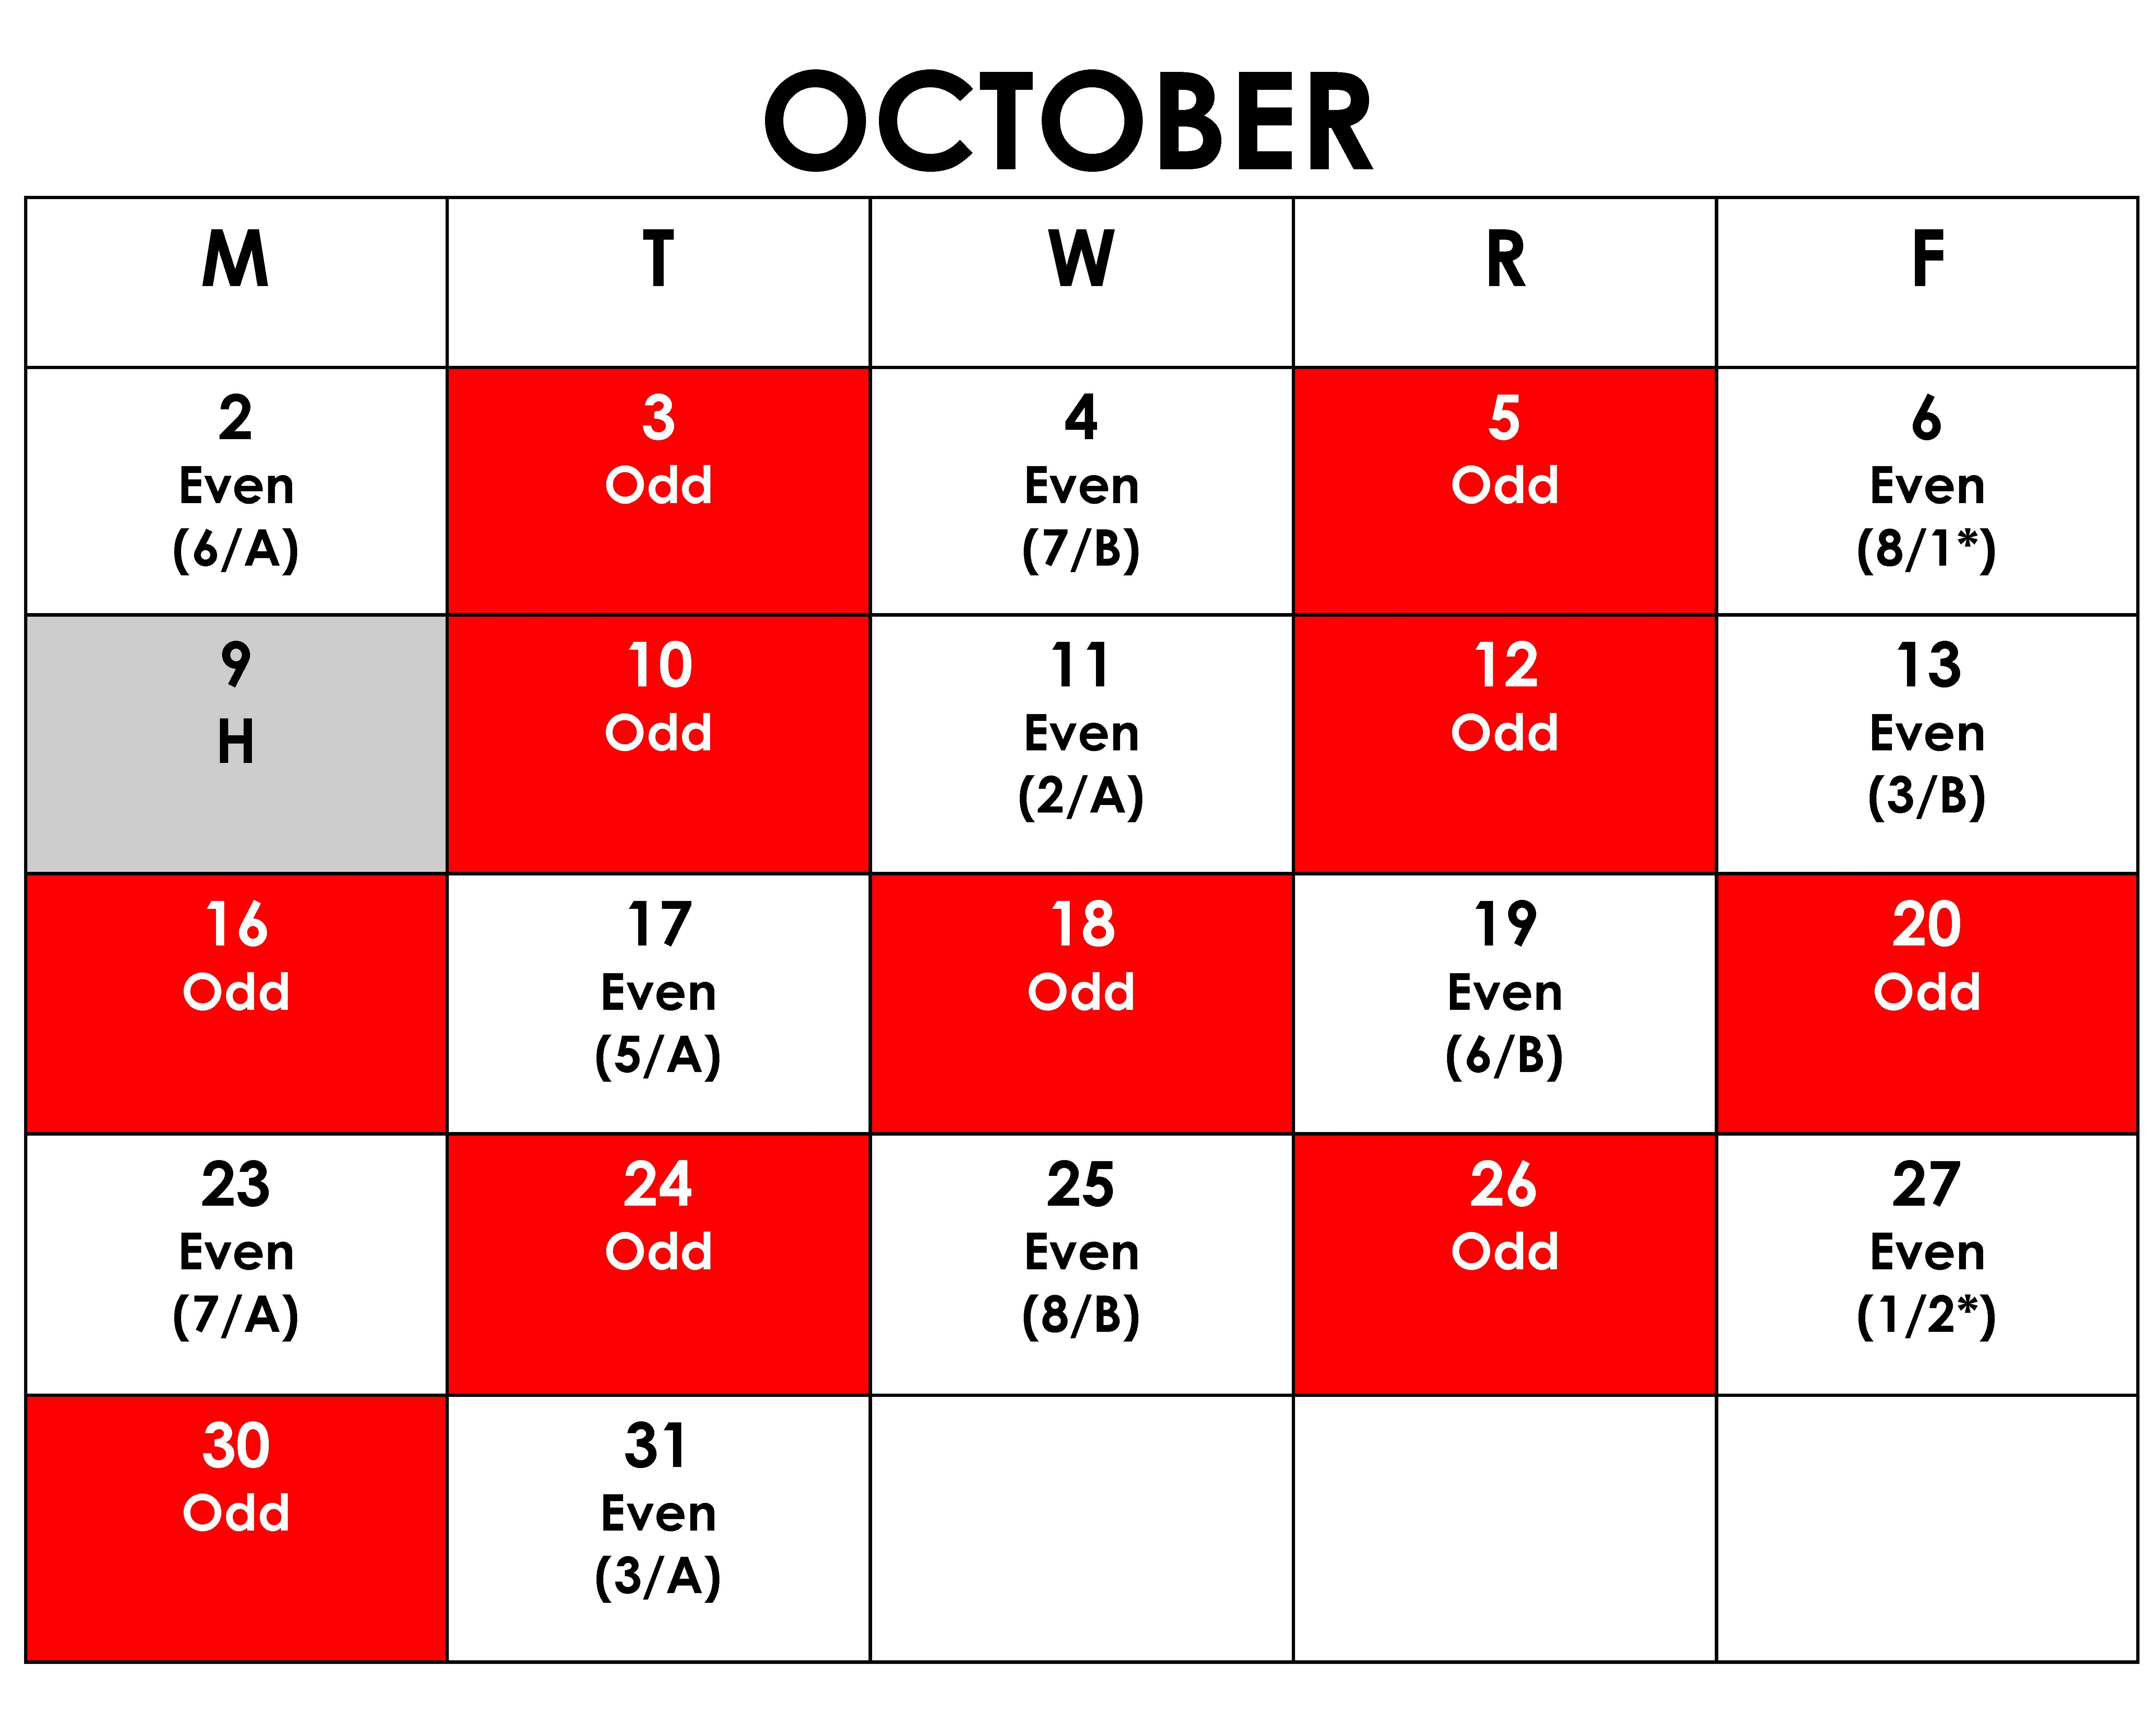 October calendar showing red and white days